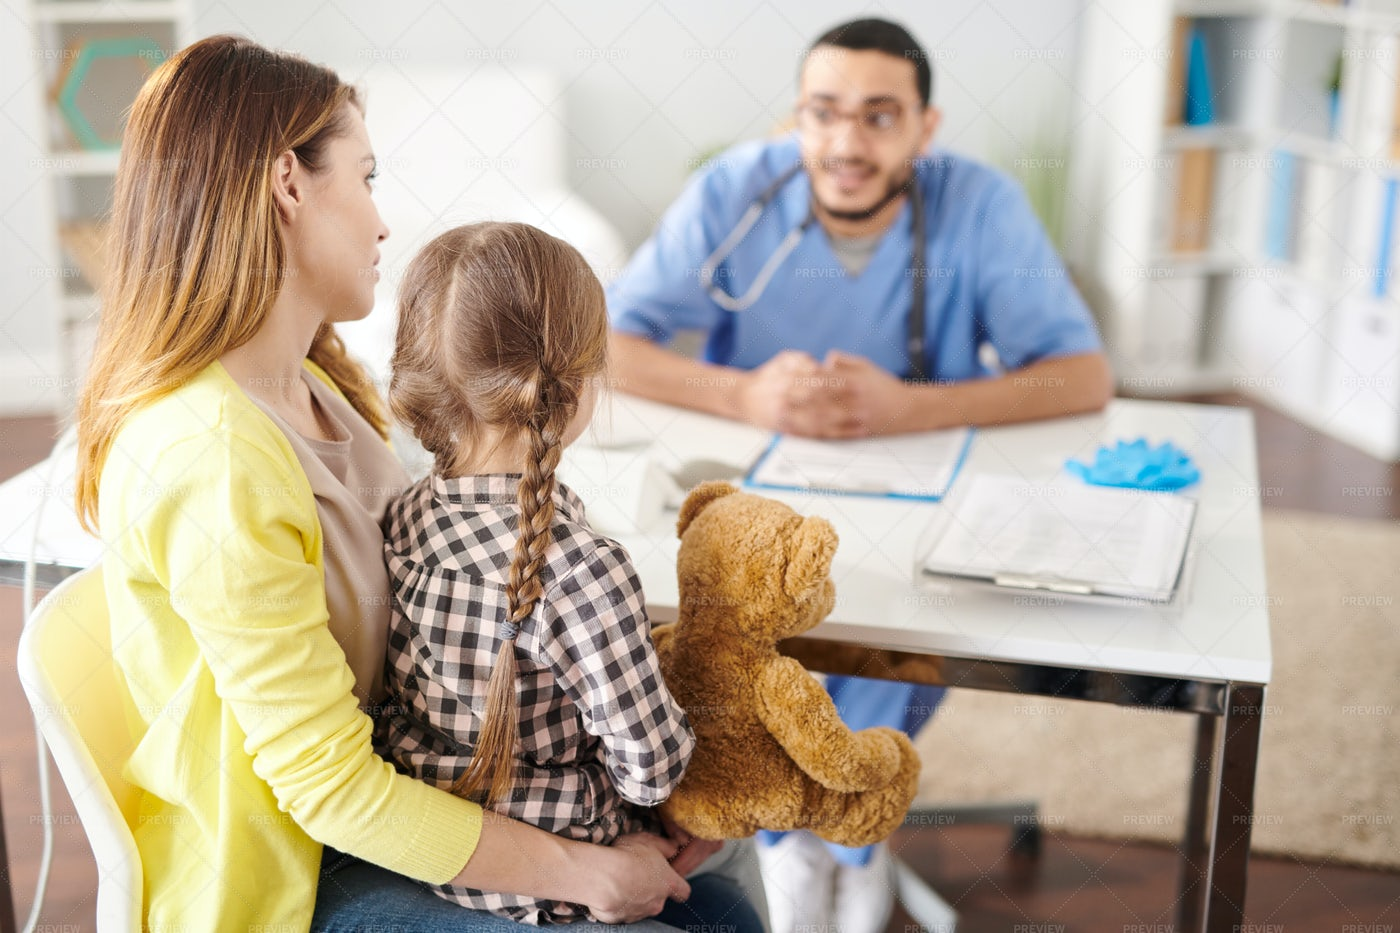 Mother With Little Girl In Doctors...: Stock Photos